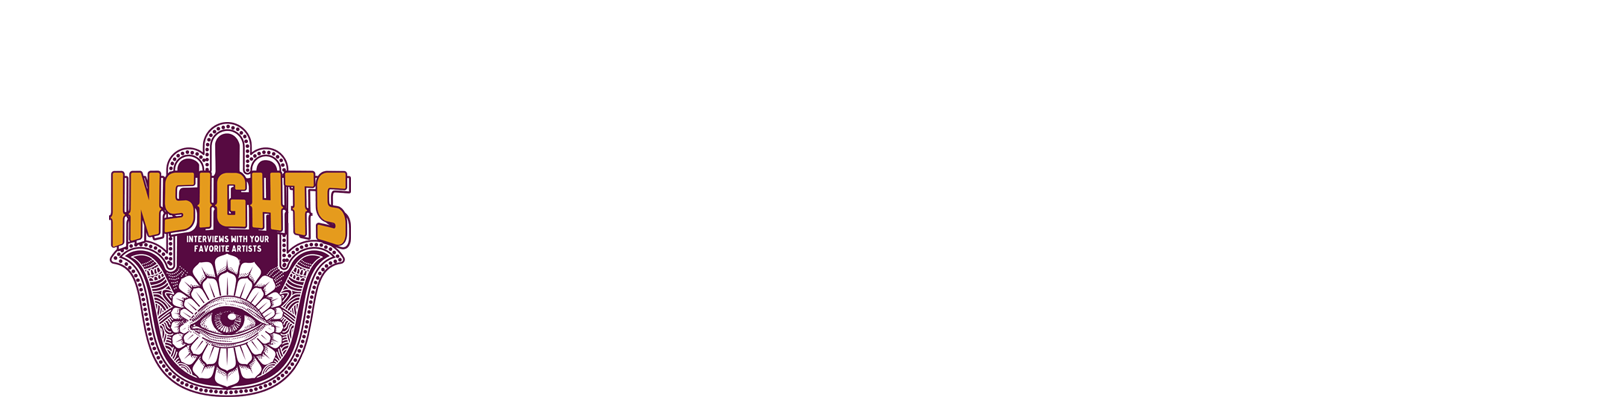 HomePageSlide-Insights2-new